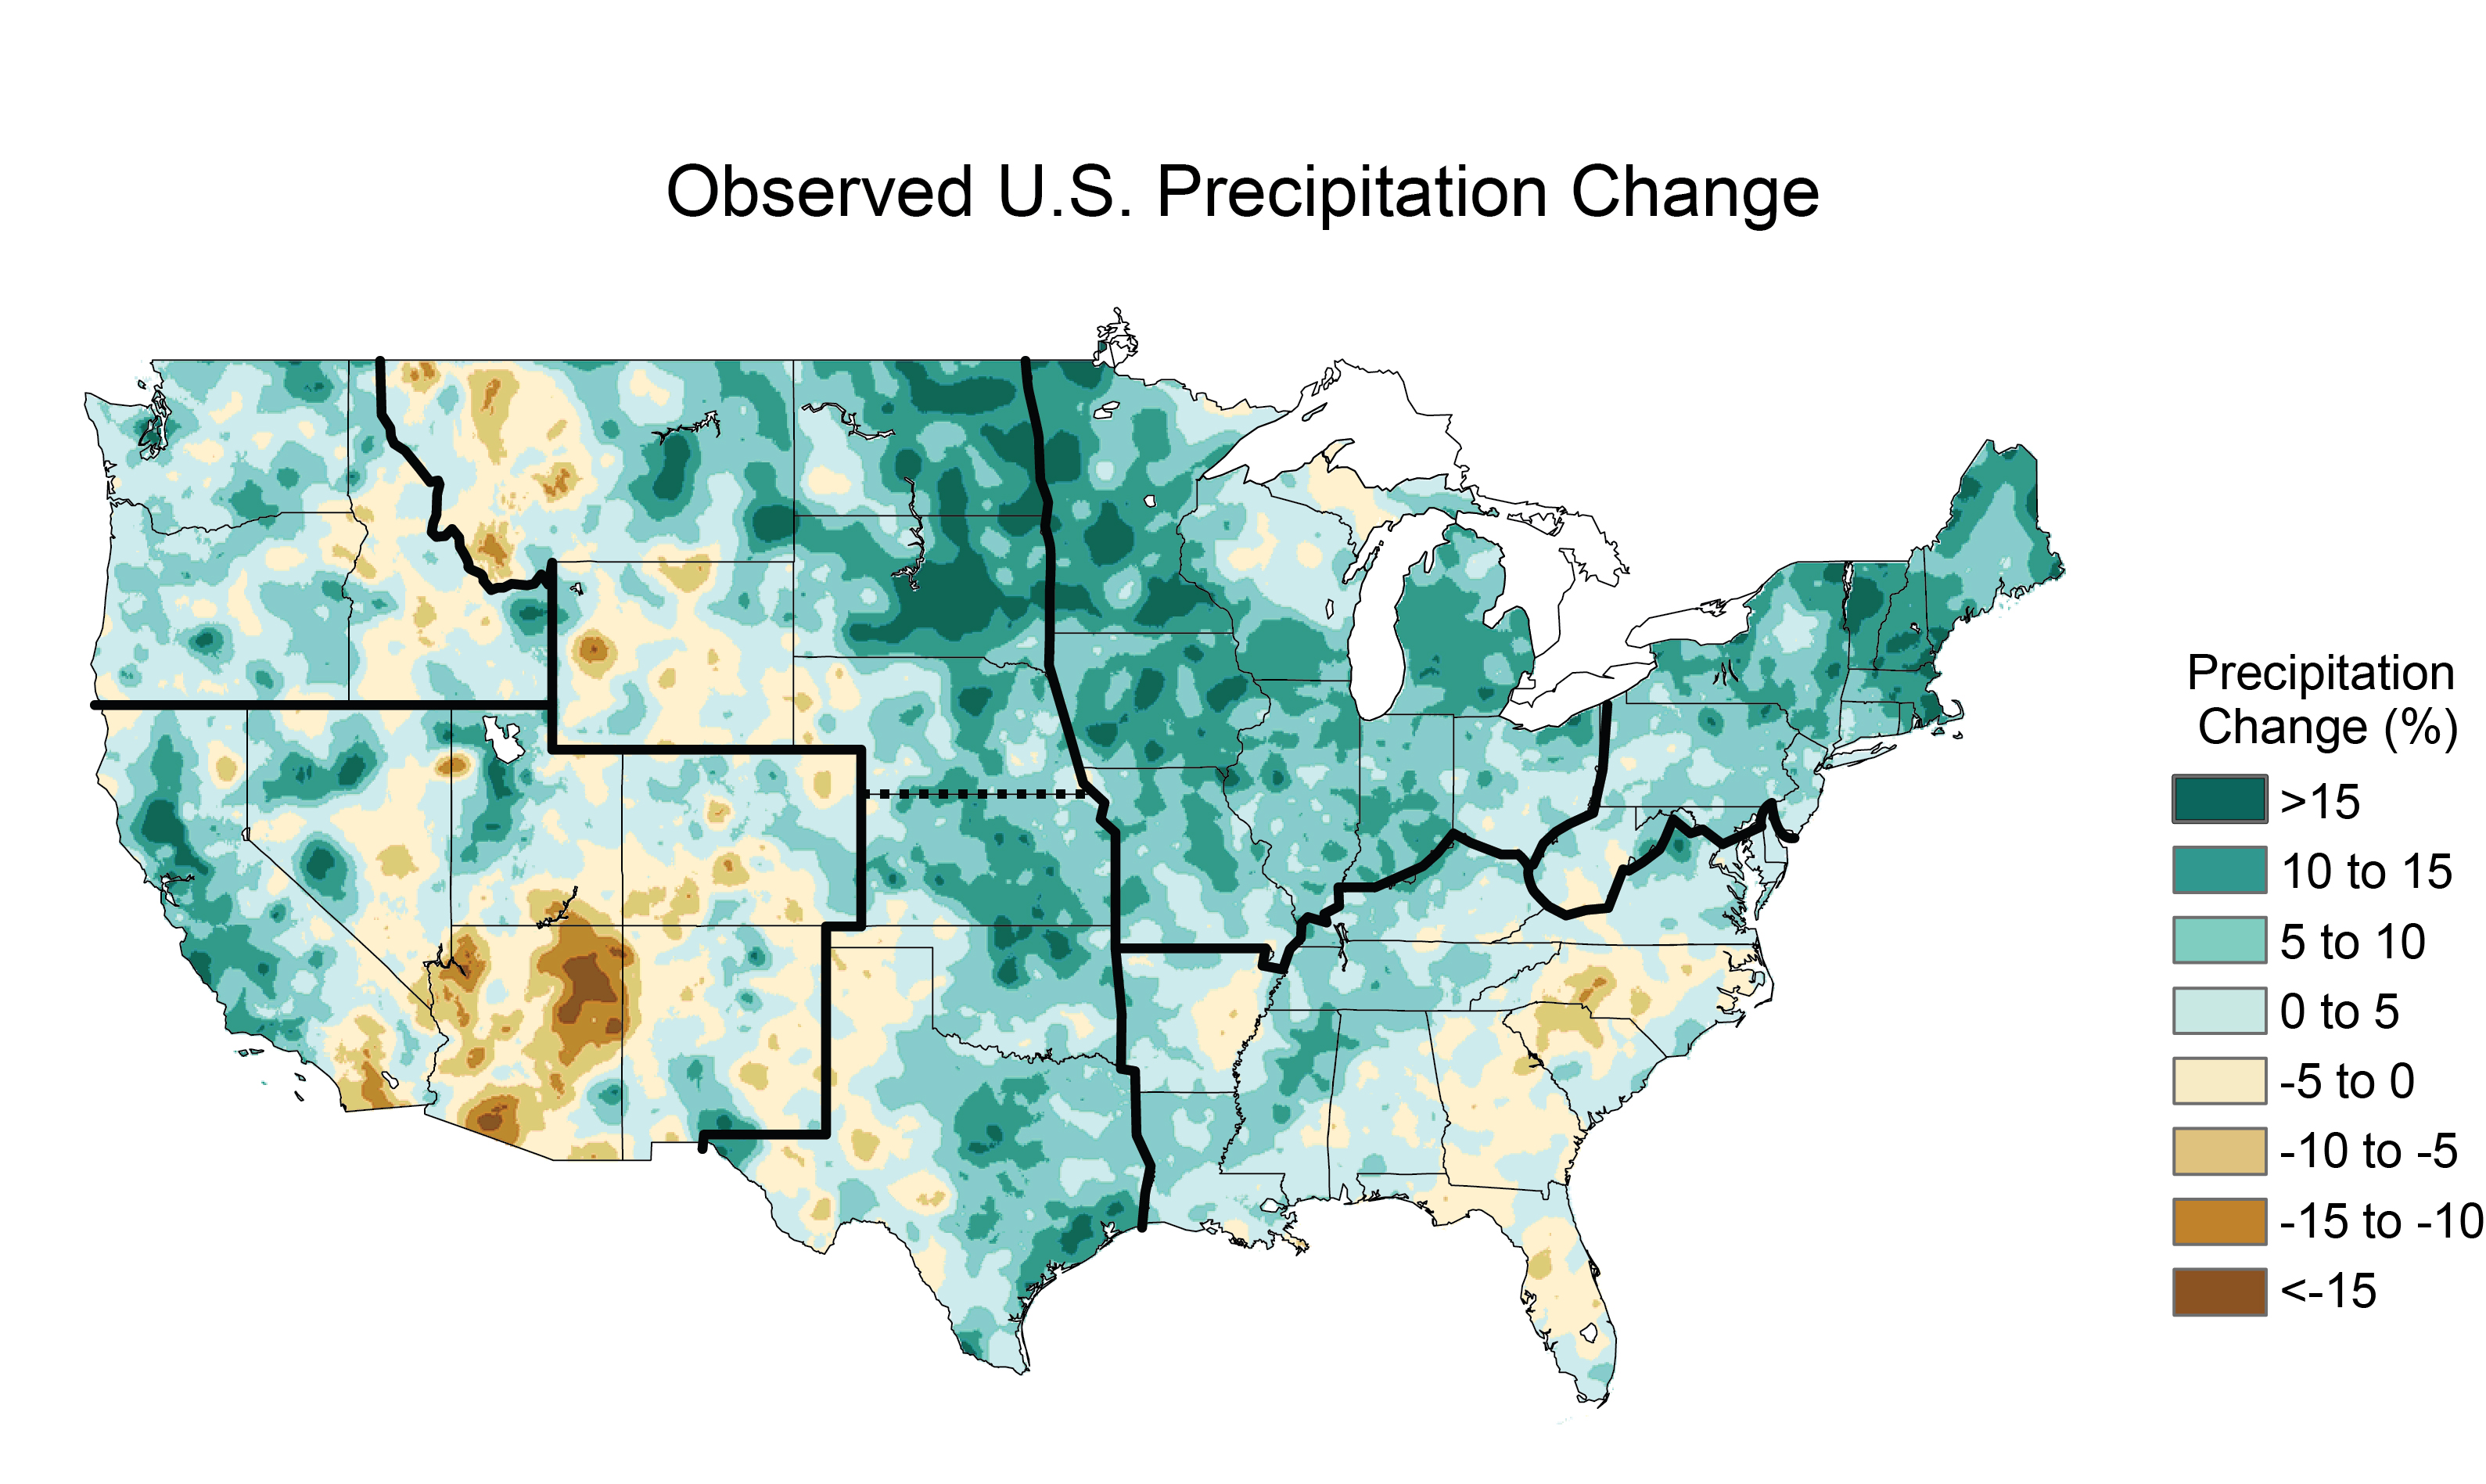 Climate Changes In The United States Image Of The Day - Us map rainfall